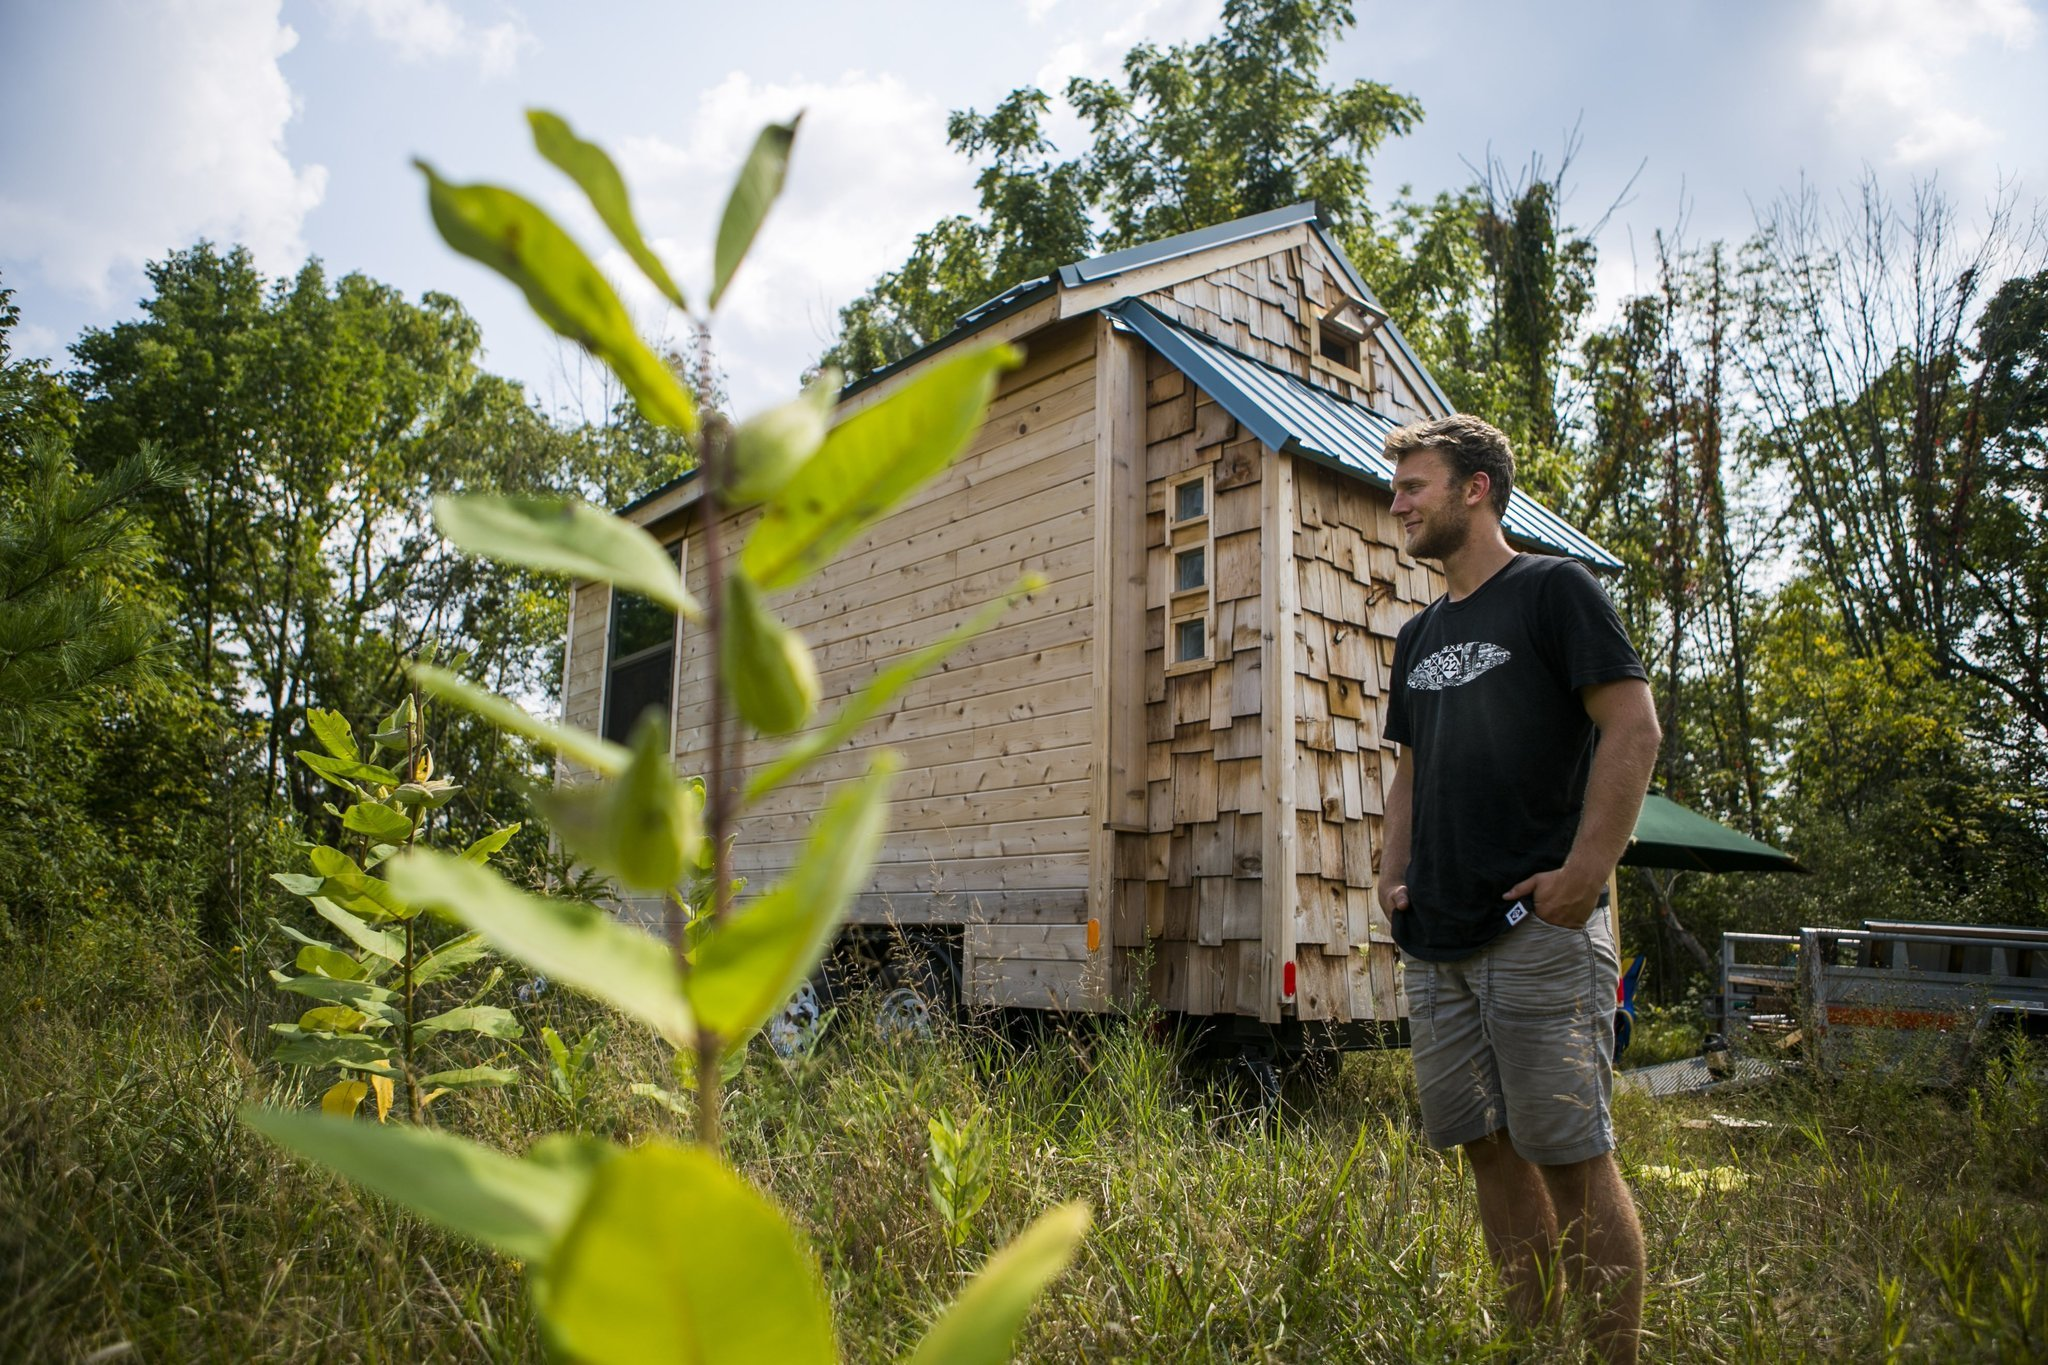 University of Michigan student builds, lives in tiny house